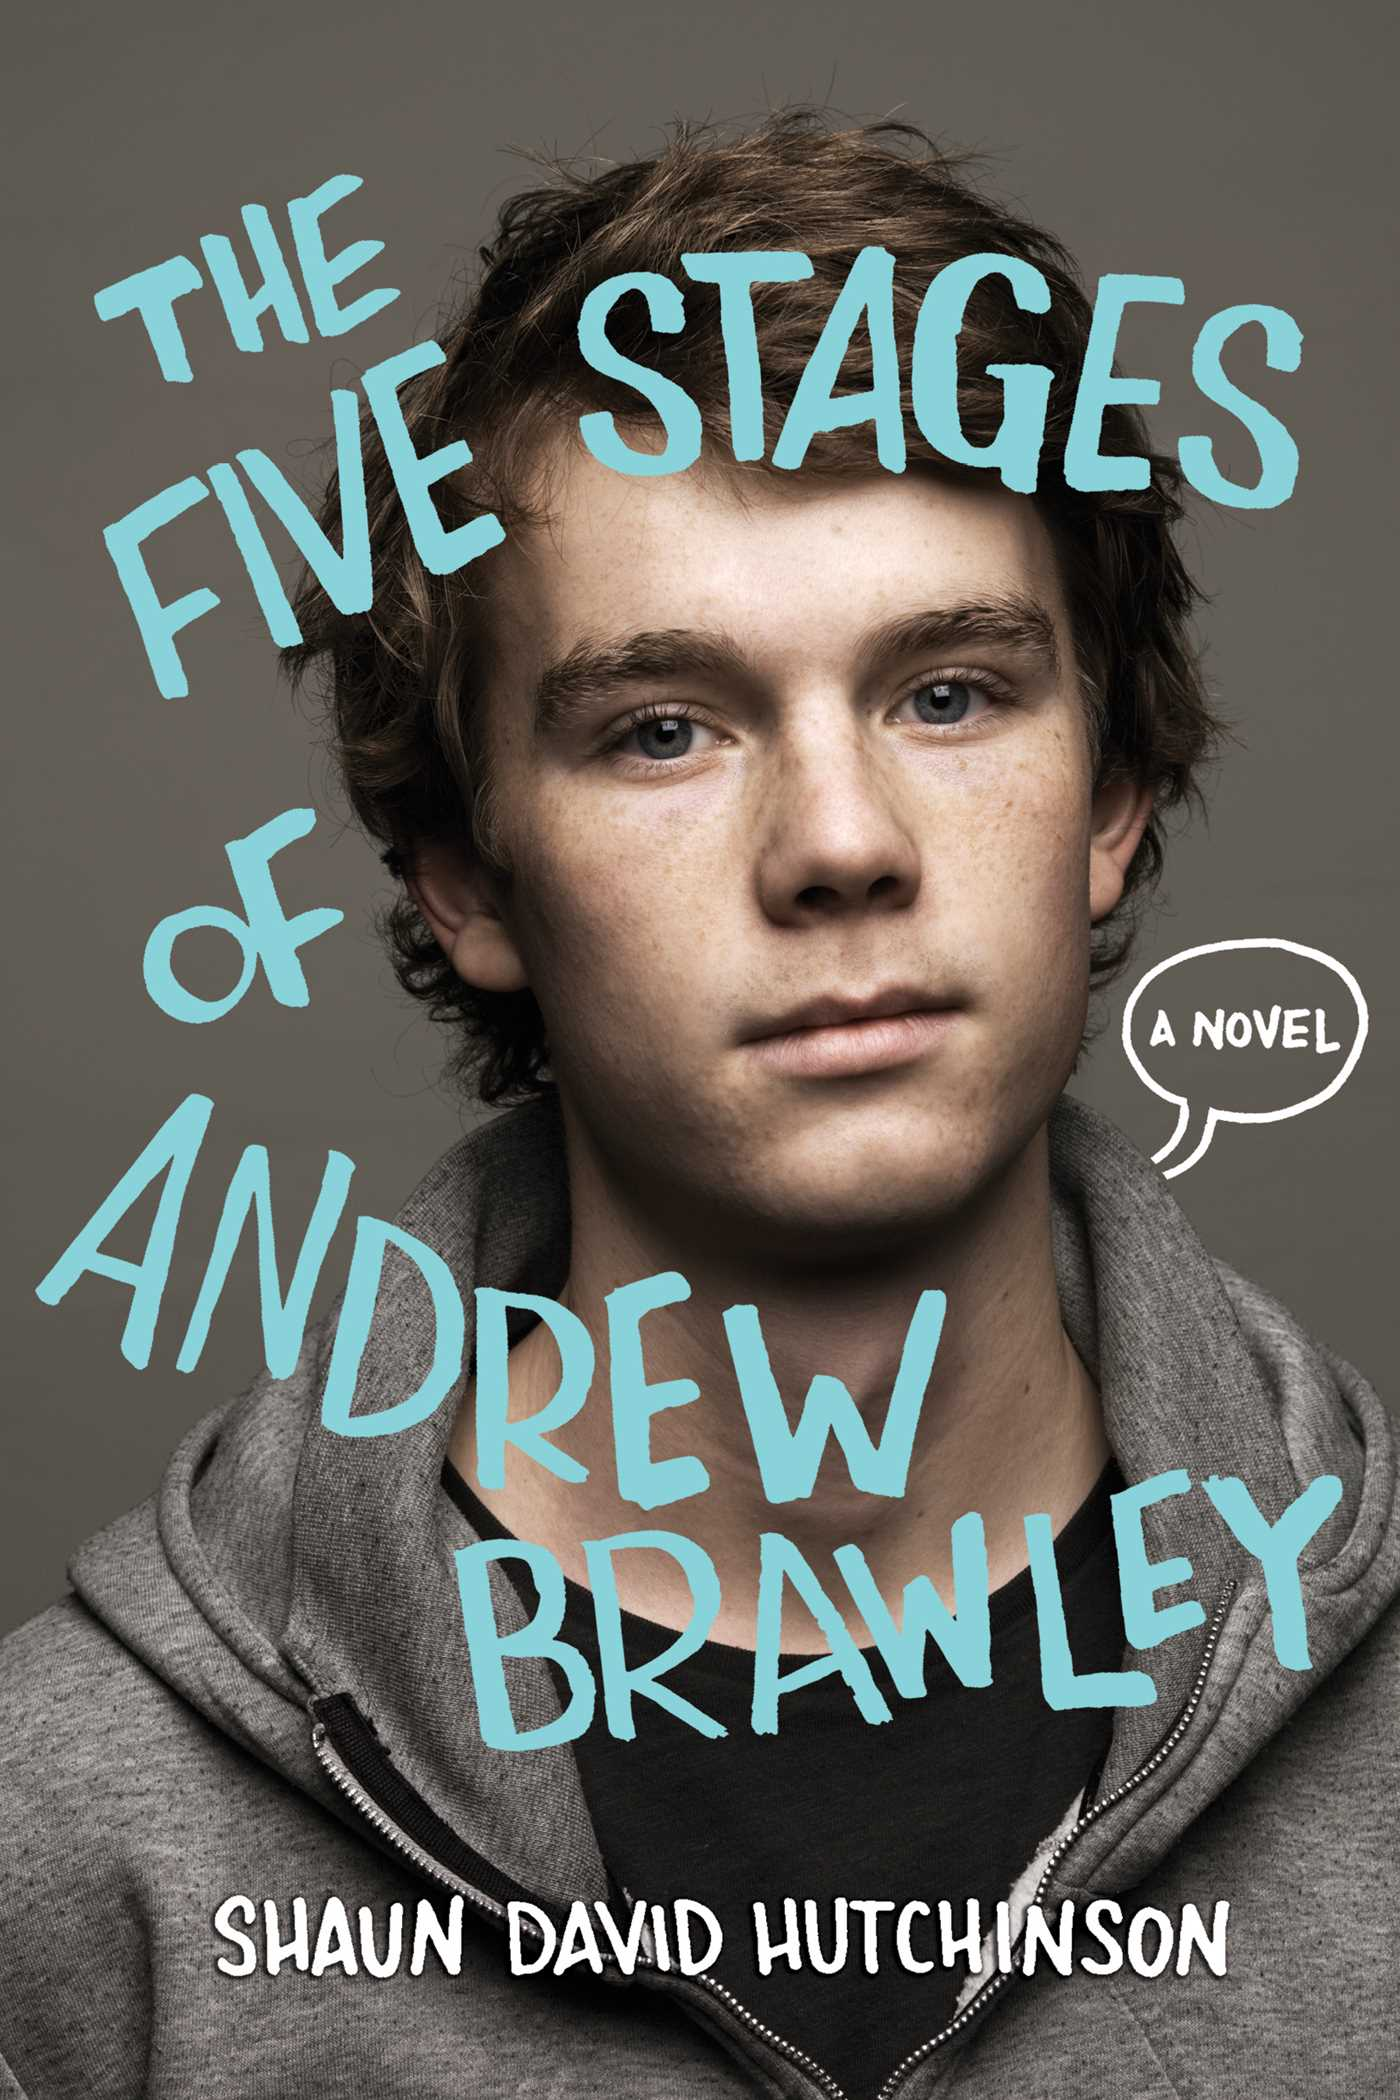 The five stages of andrew brawley 9781481403115 hr